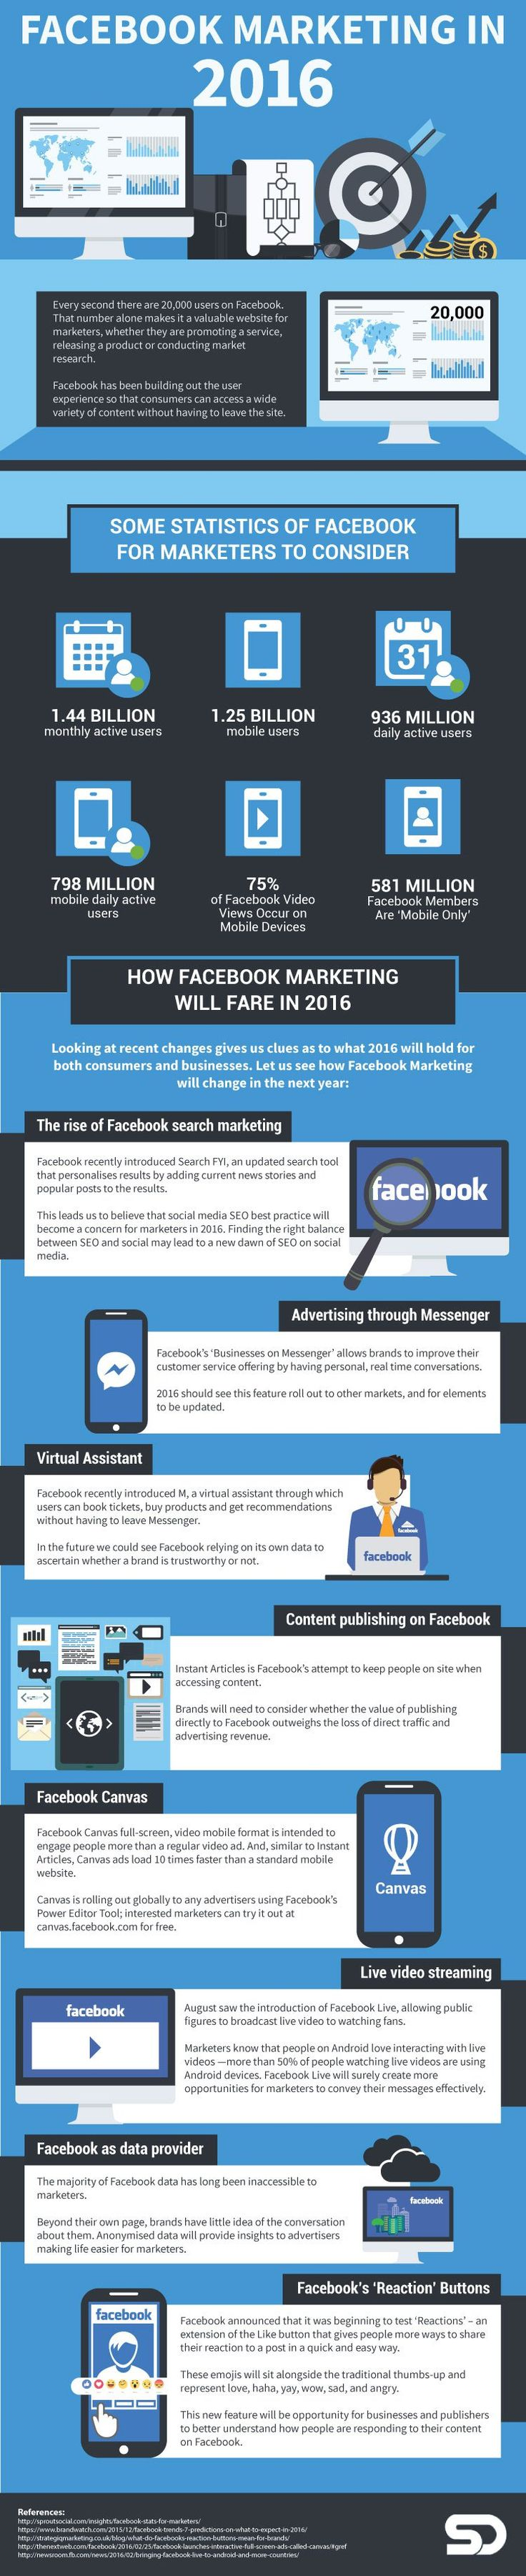 How Marketing On Facebook Is Changing In 2016